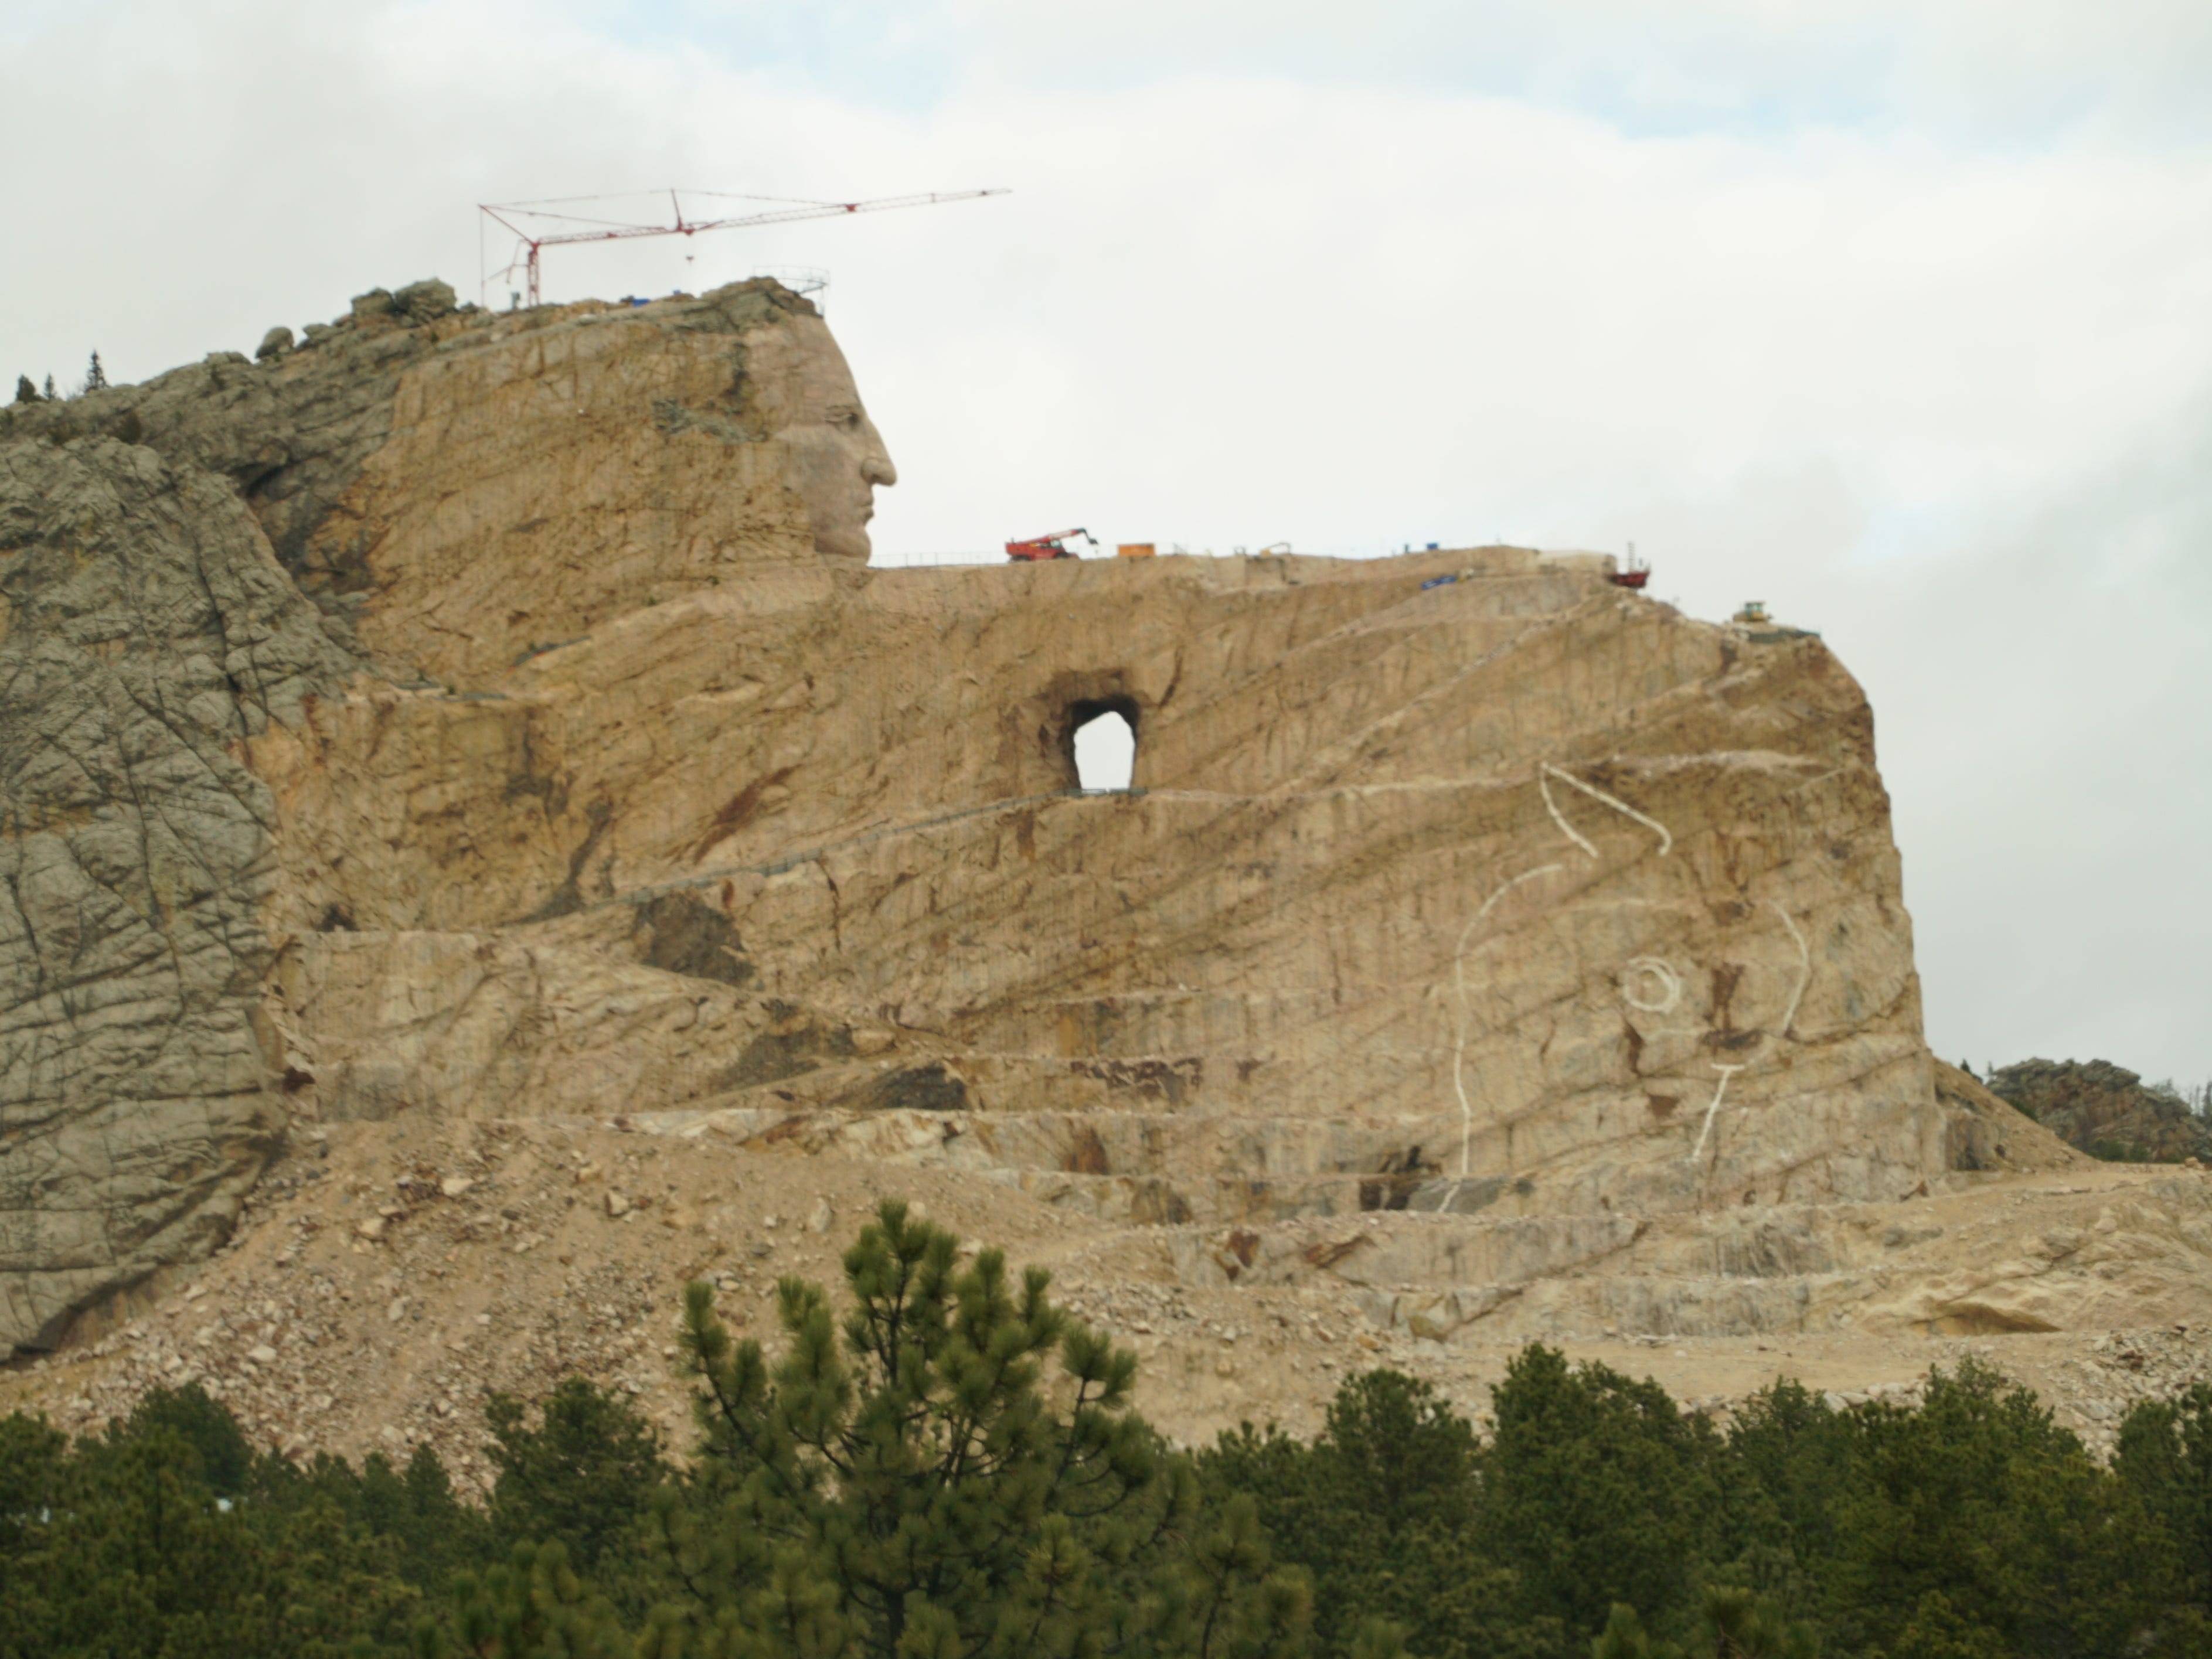 Construction on the Crazy Horse Memorial began in the 1940s, and is still a beautiful work in progress.